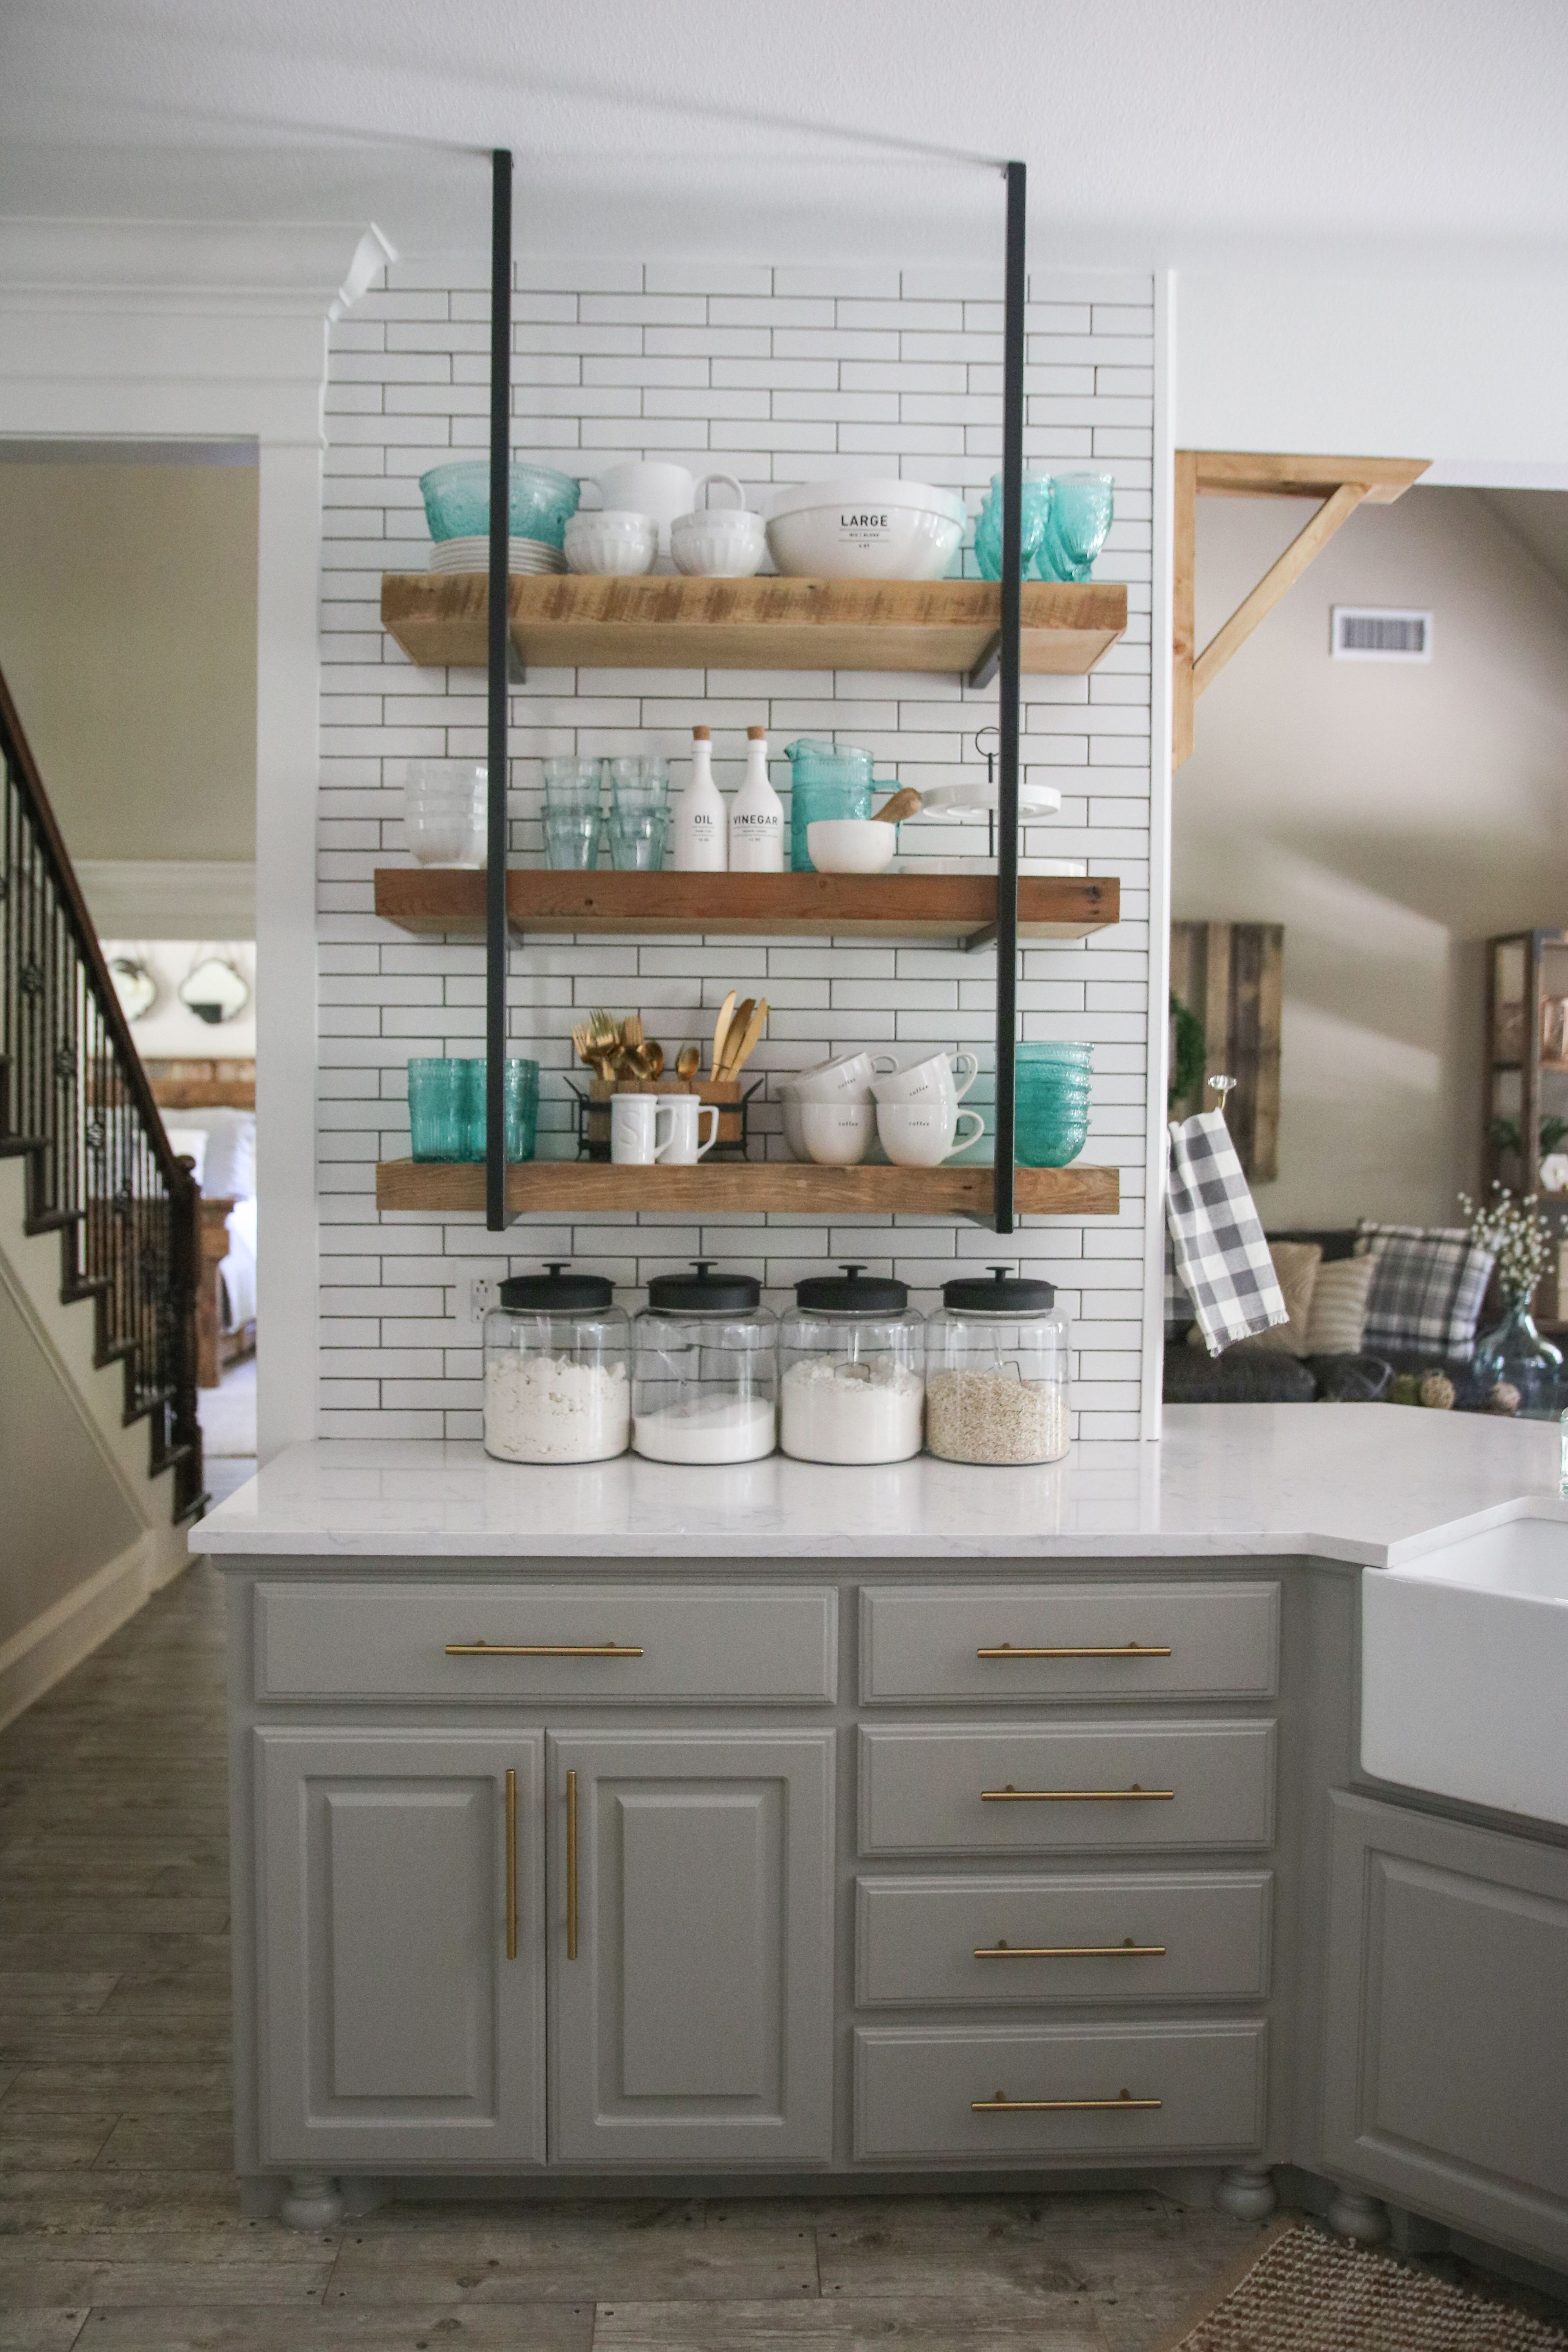 Get inspired with kitchen ideas and photos for your home refresh or